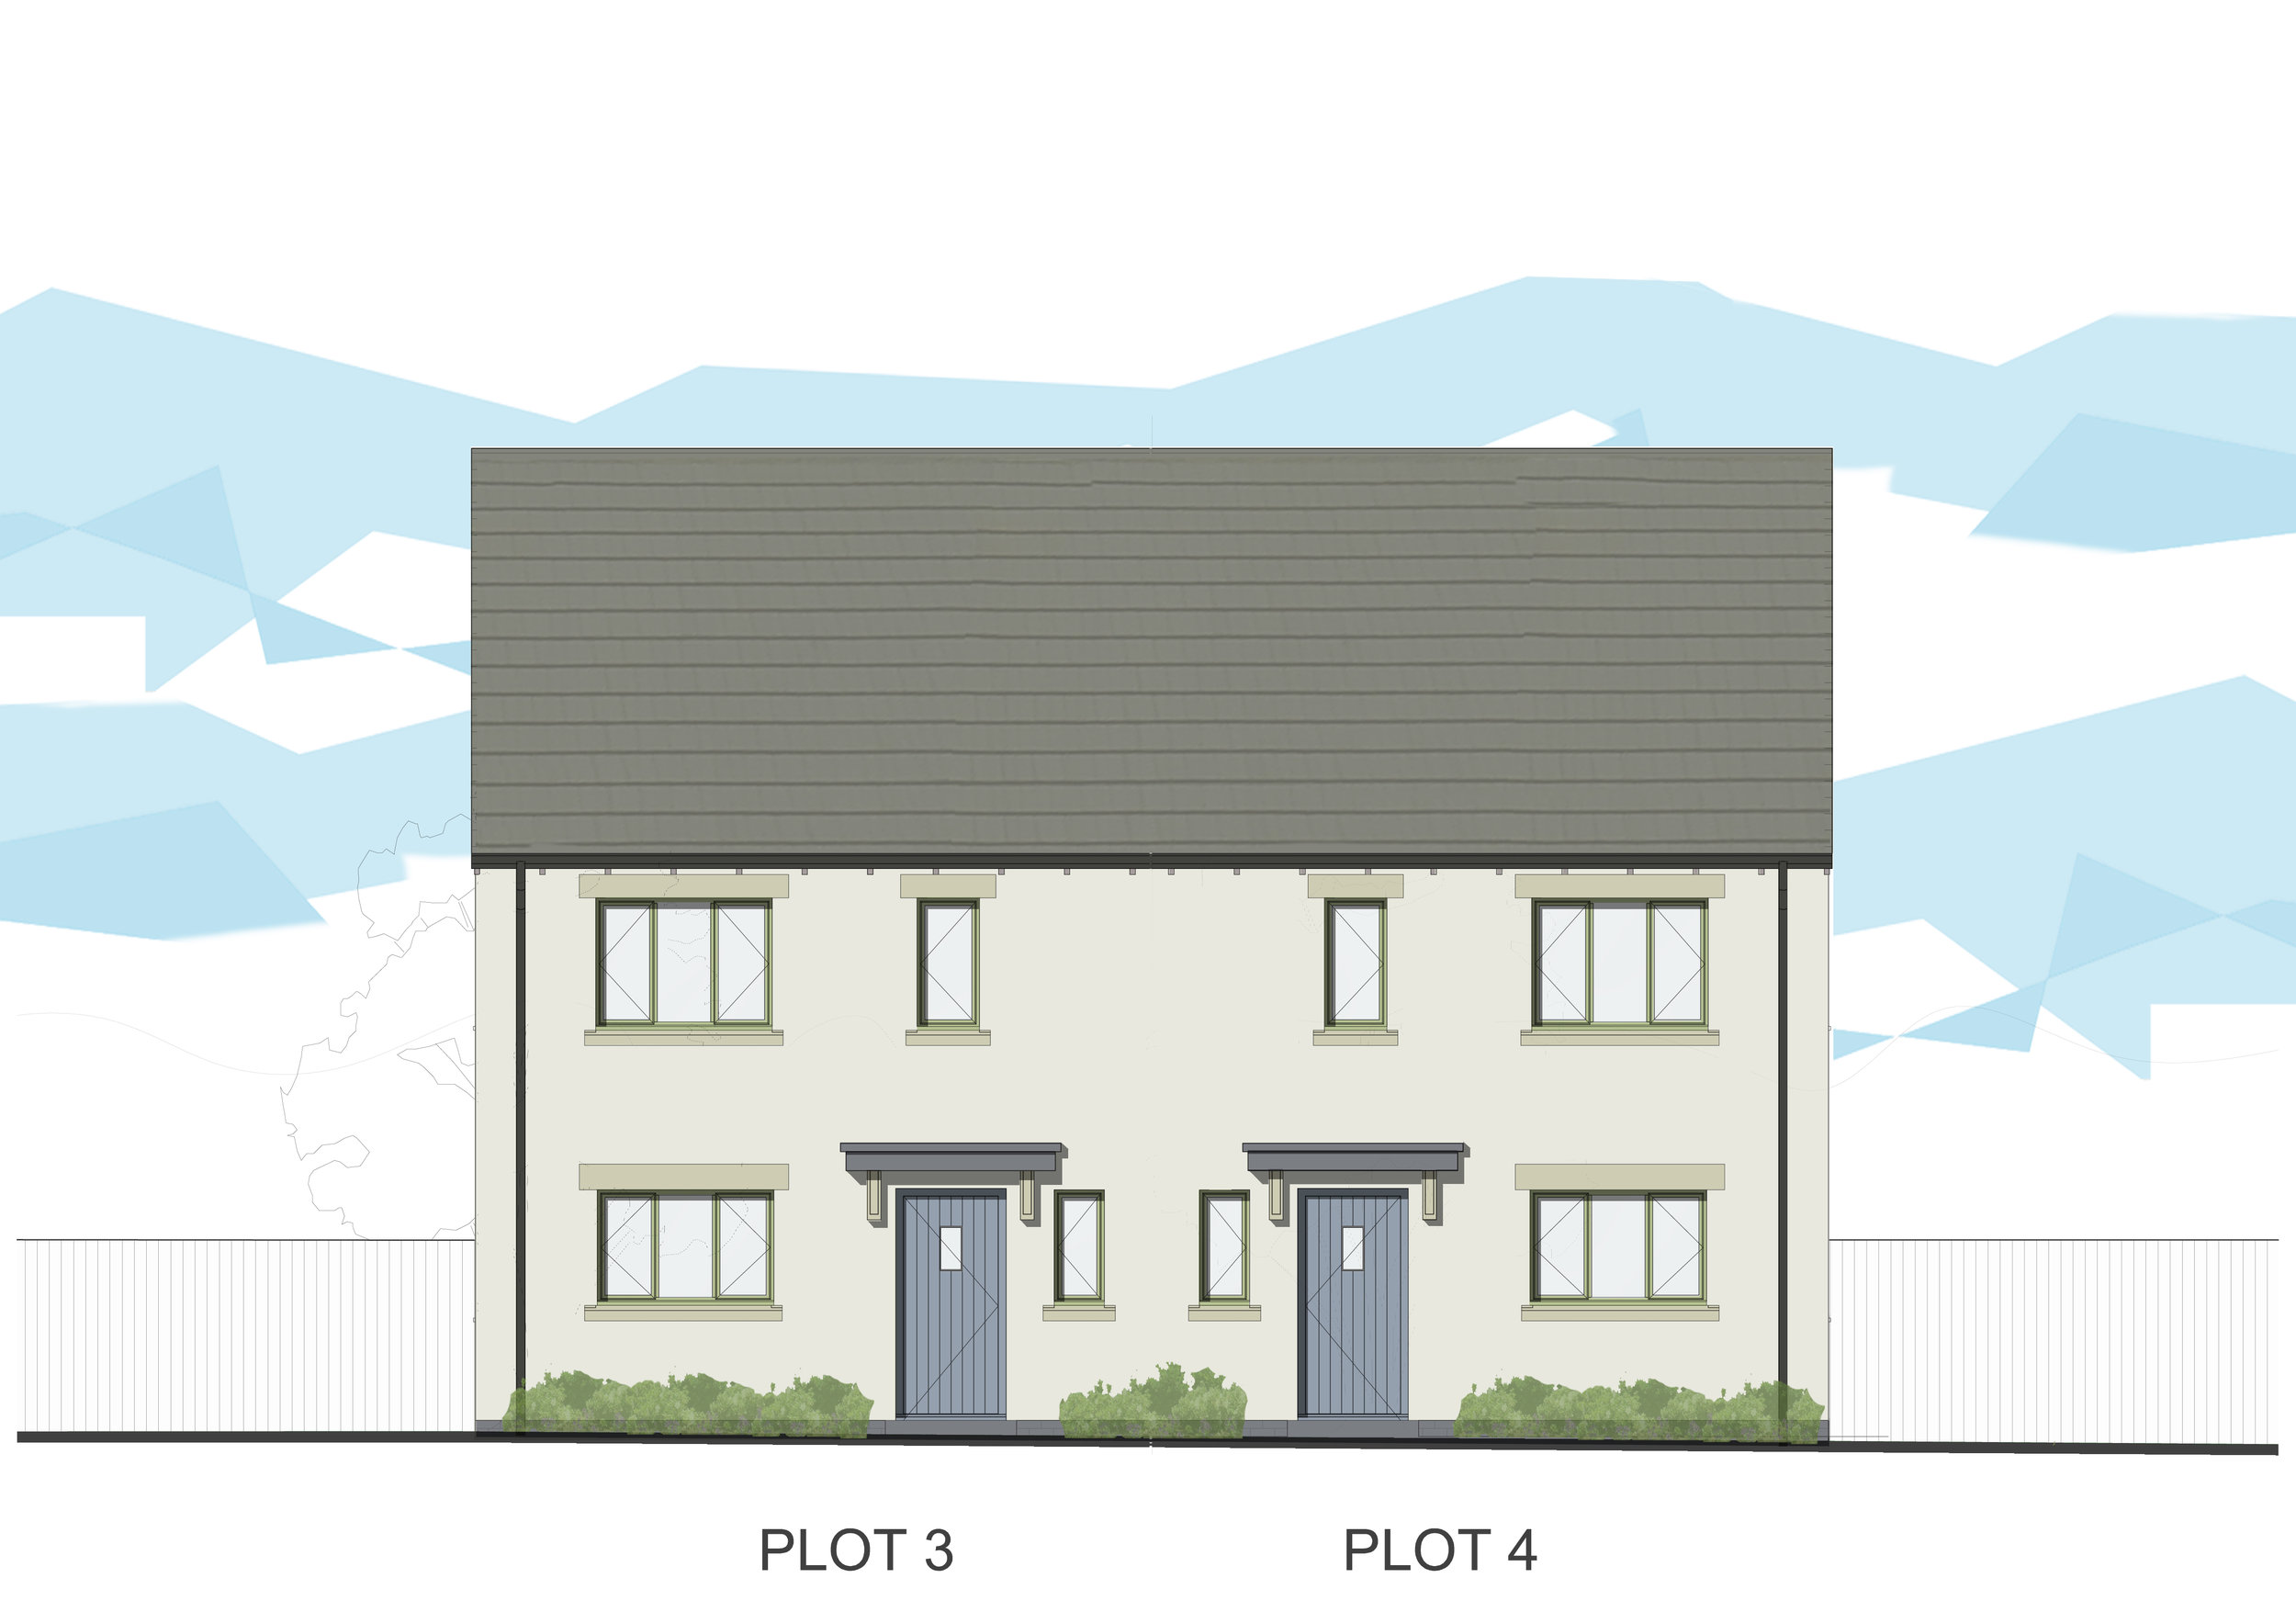 New houses in Sutton Benger